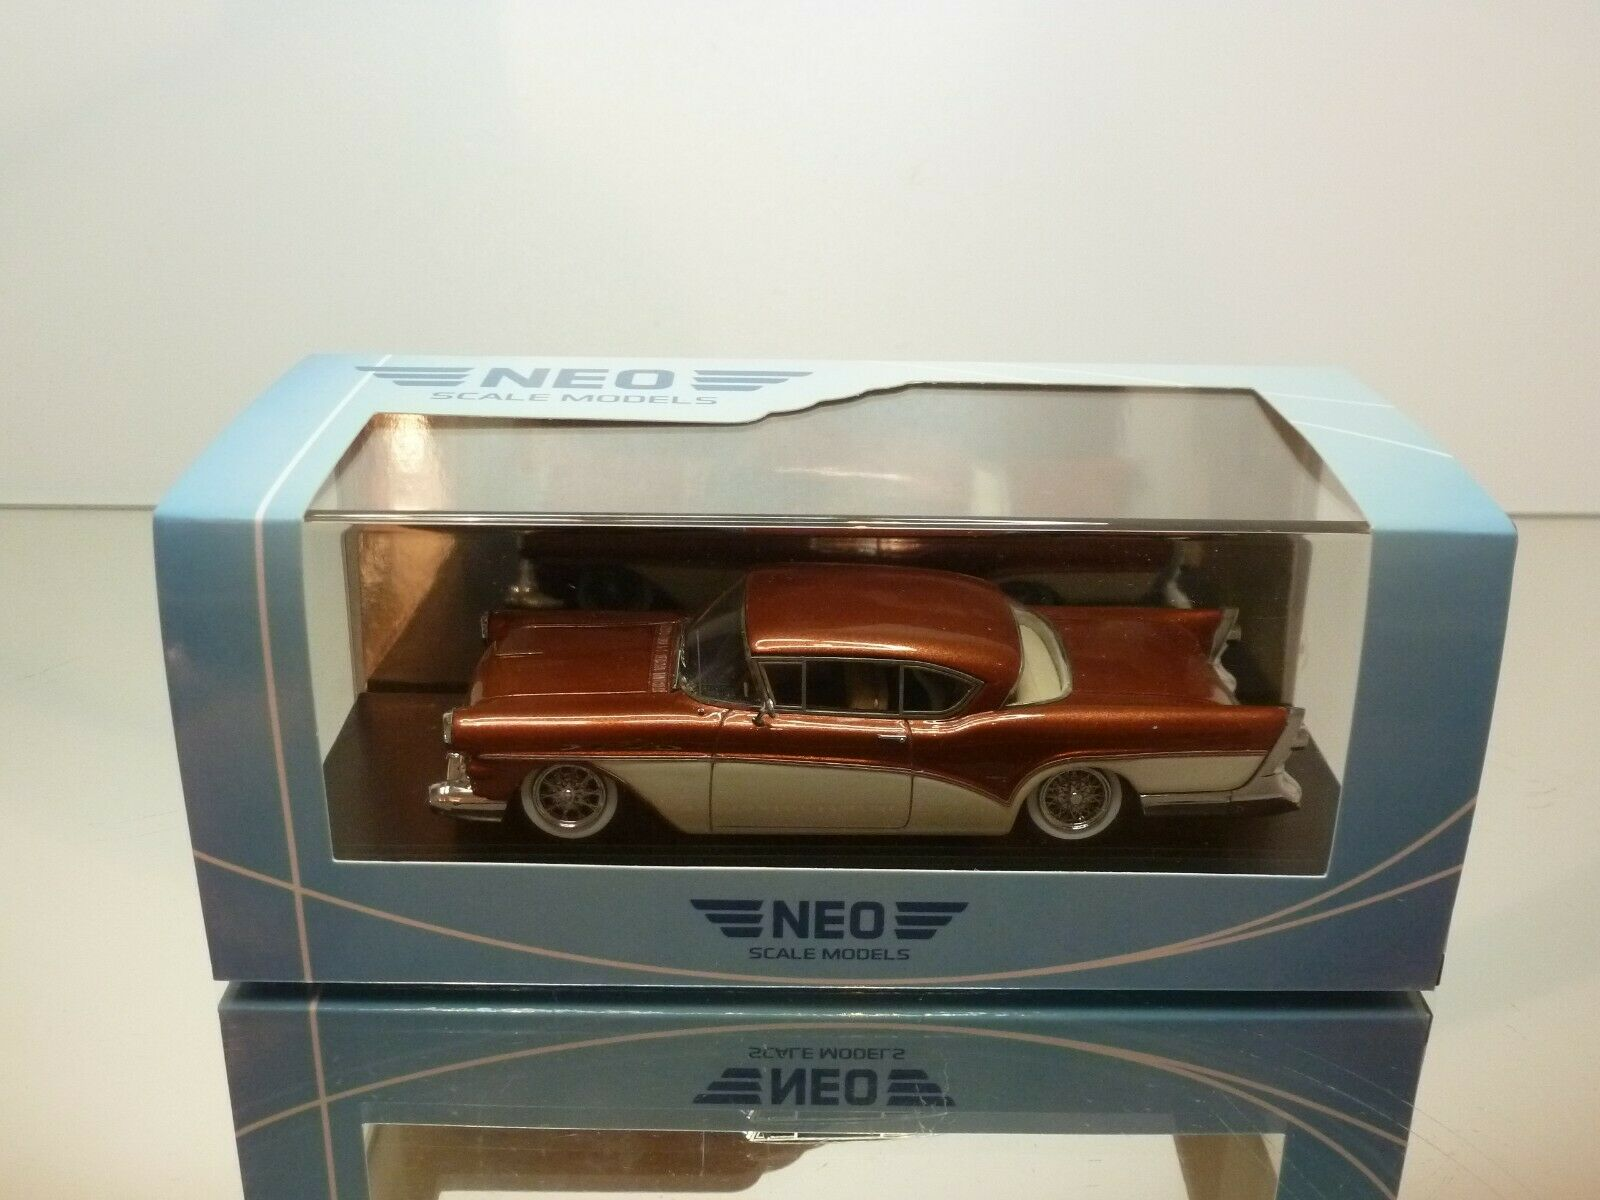 NEO SCALE MODELS BUICK ROADMASTER HARDTOP COUPE 1957 - 1 43 - EXCELLENT IN BOX